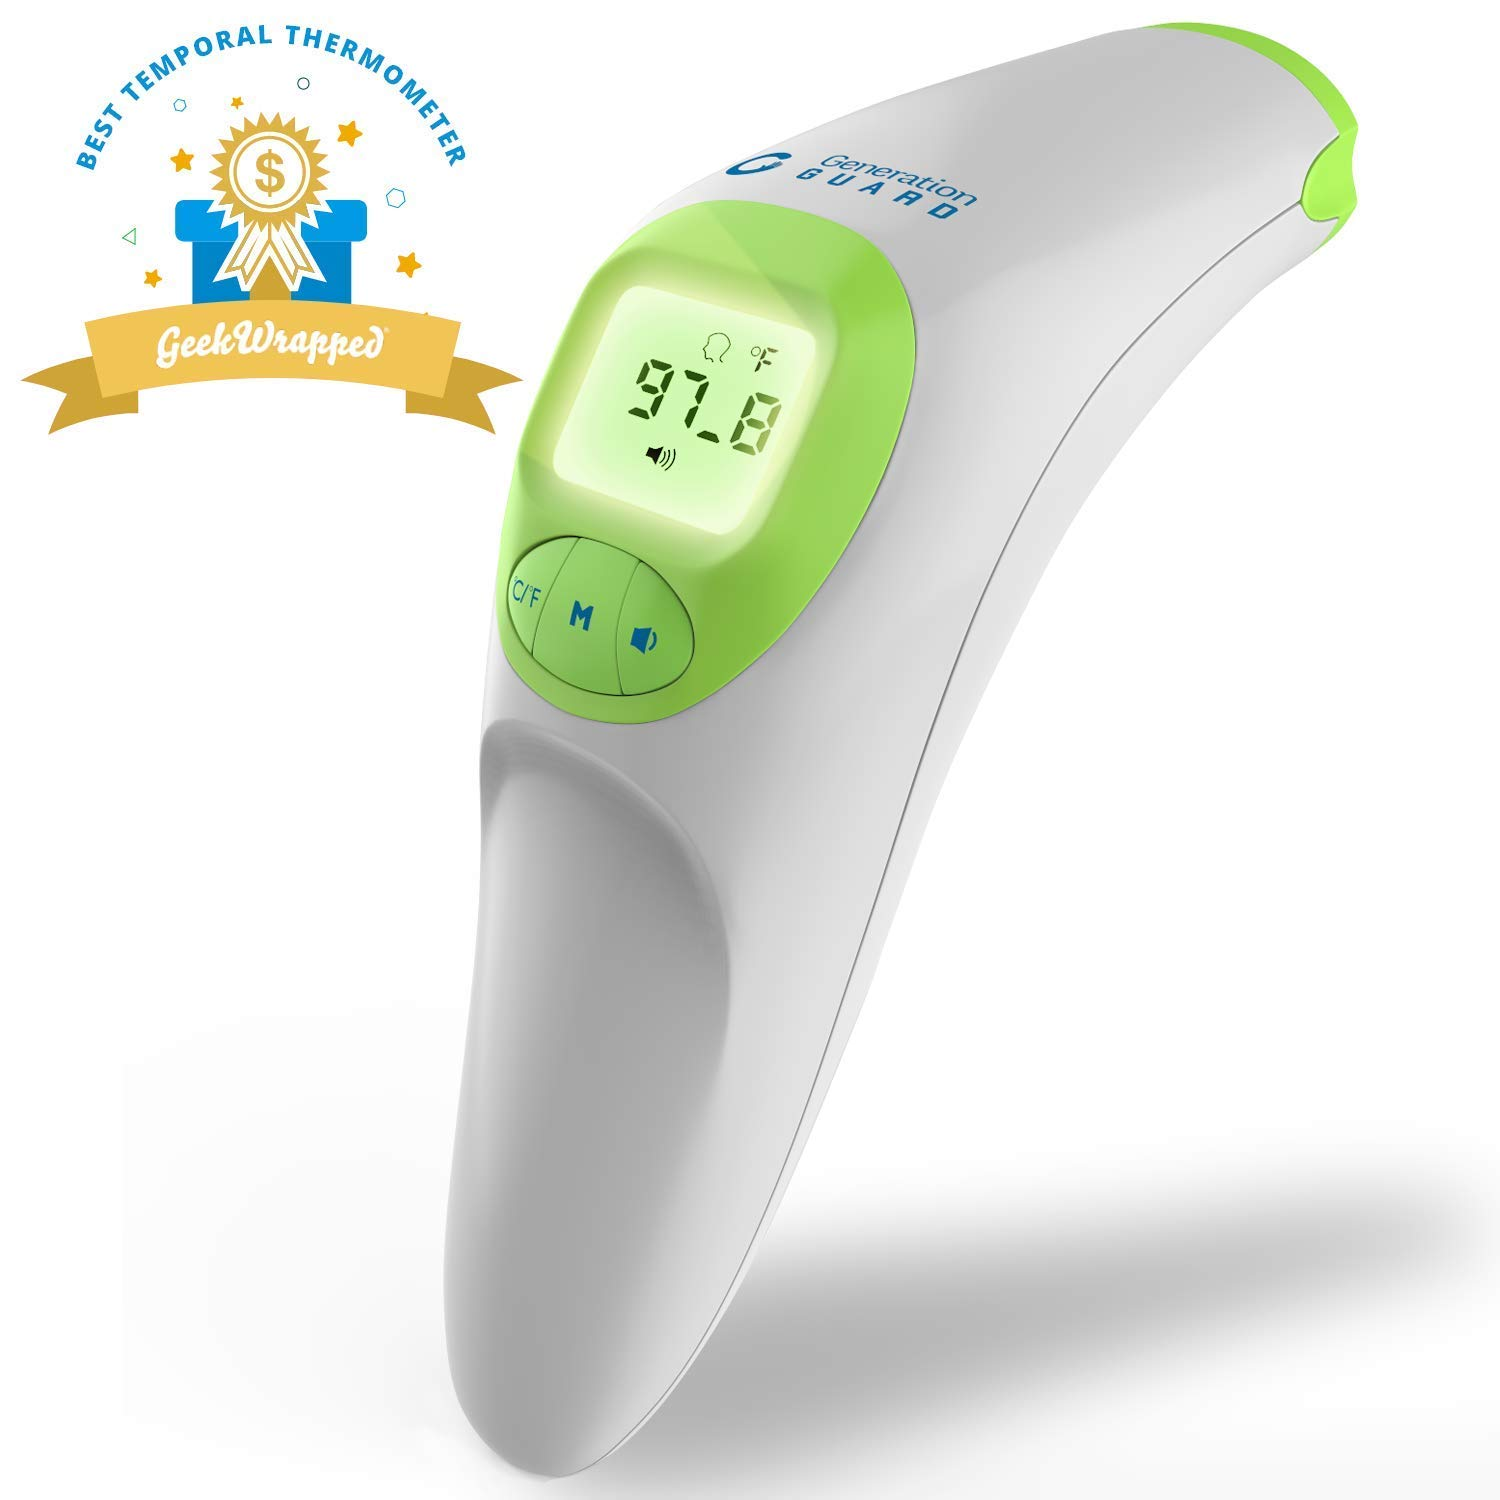 Clinical Forehead Thermometer New 2017 FDA Approved Instant Read Sensor for Digital Fever Measurement Temporal Professional No Touch Readings Newborn Infant Baby Adult & Children Best Infrared Scanner